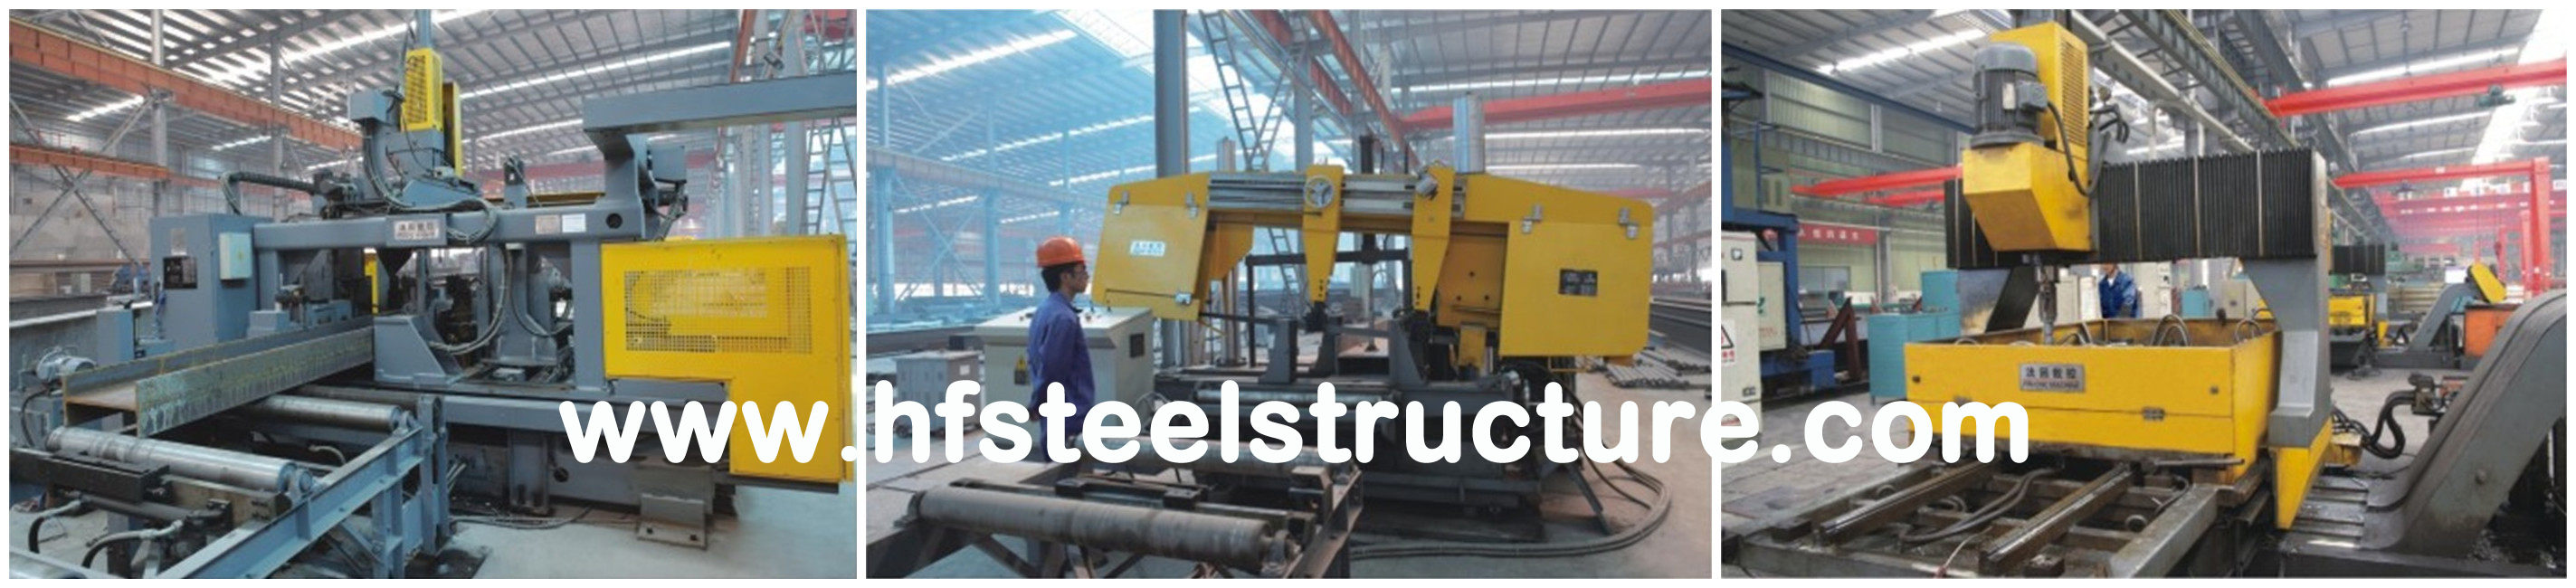 Waterproof and Pre-engineered Prefabricated Steel Structural Steel Fabrications